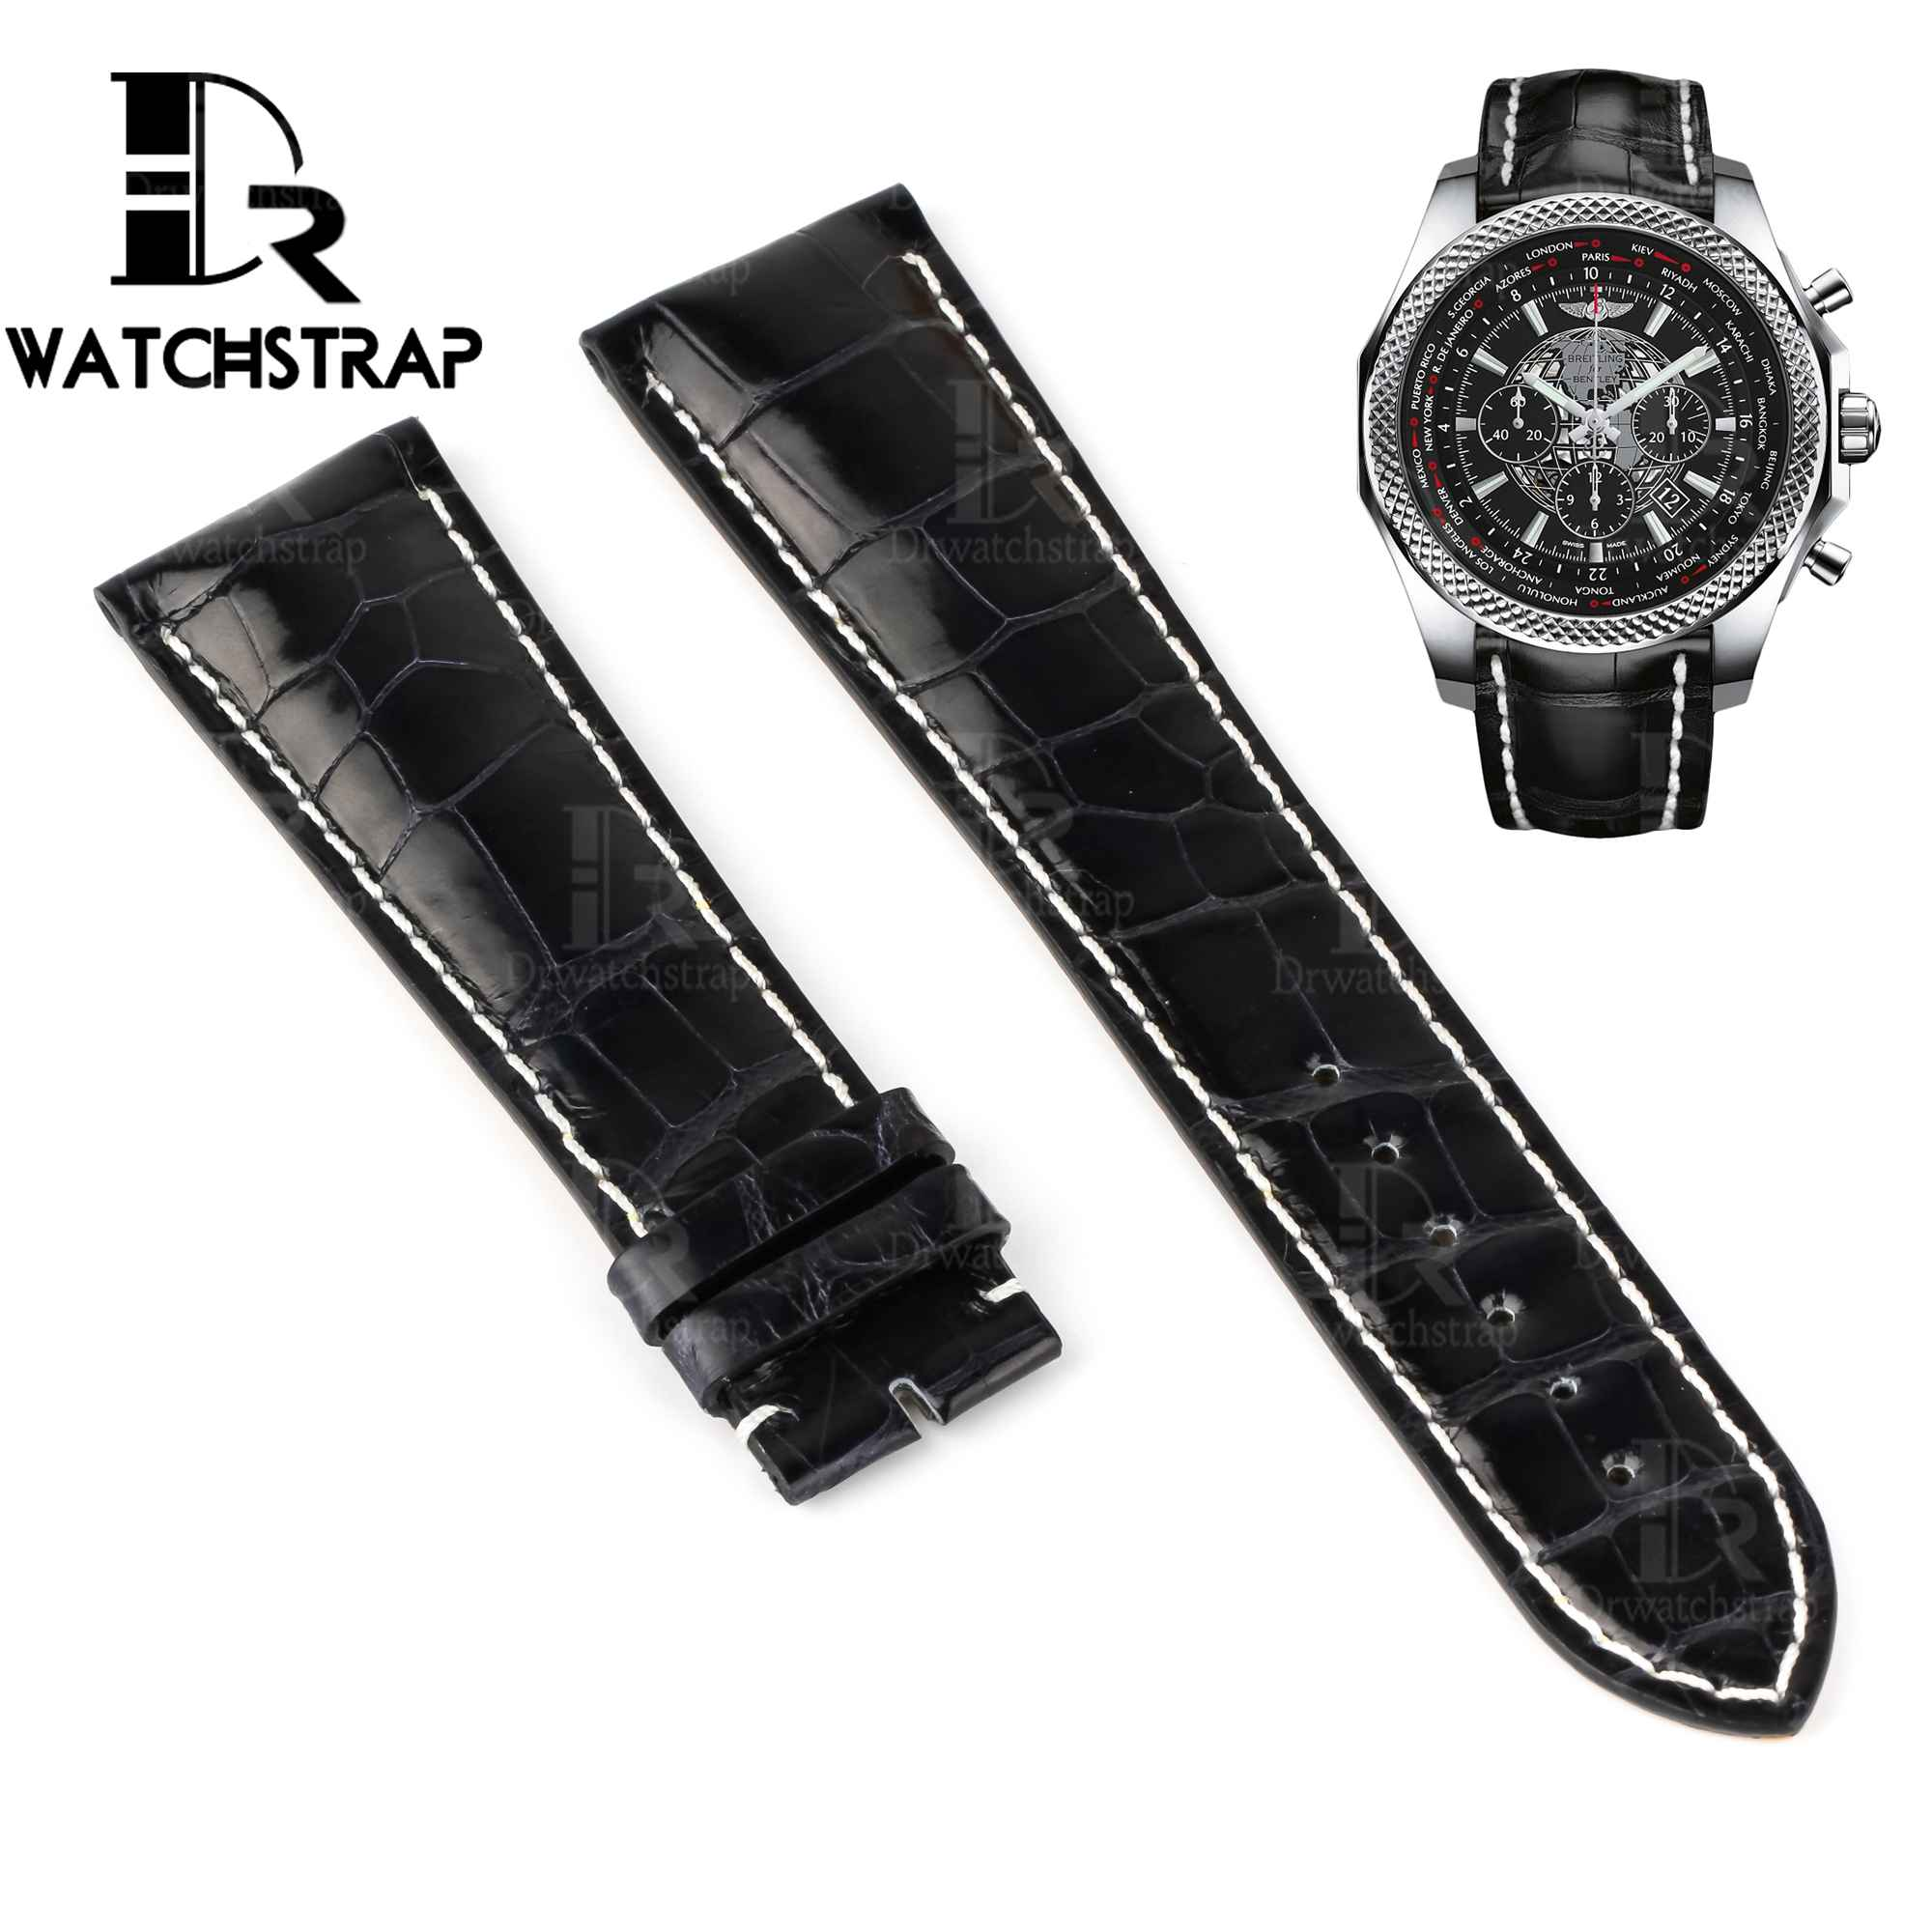 Buy Replacement America alligator leather watch band strap for Breitling Bentley Navitimer Superocean